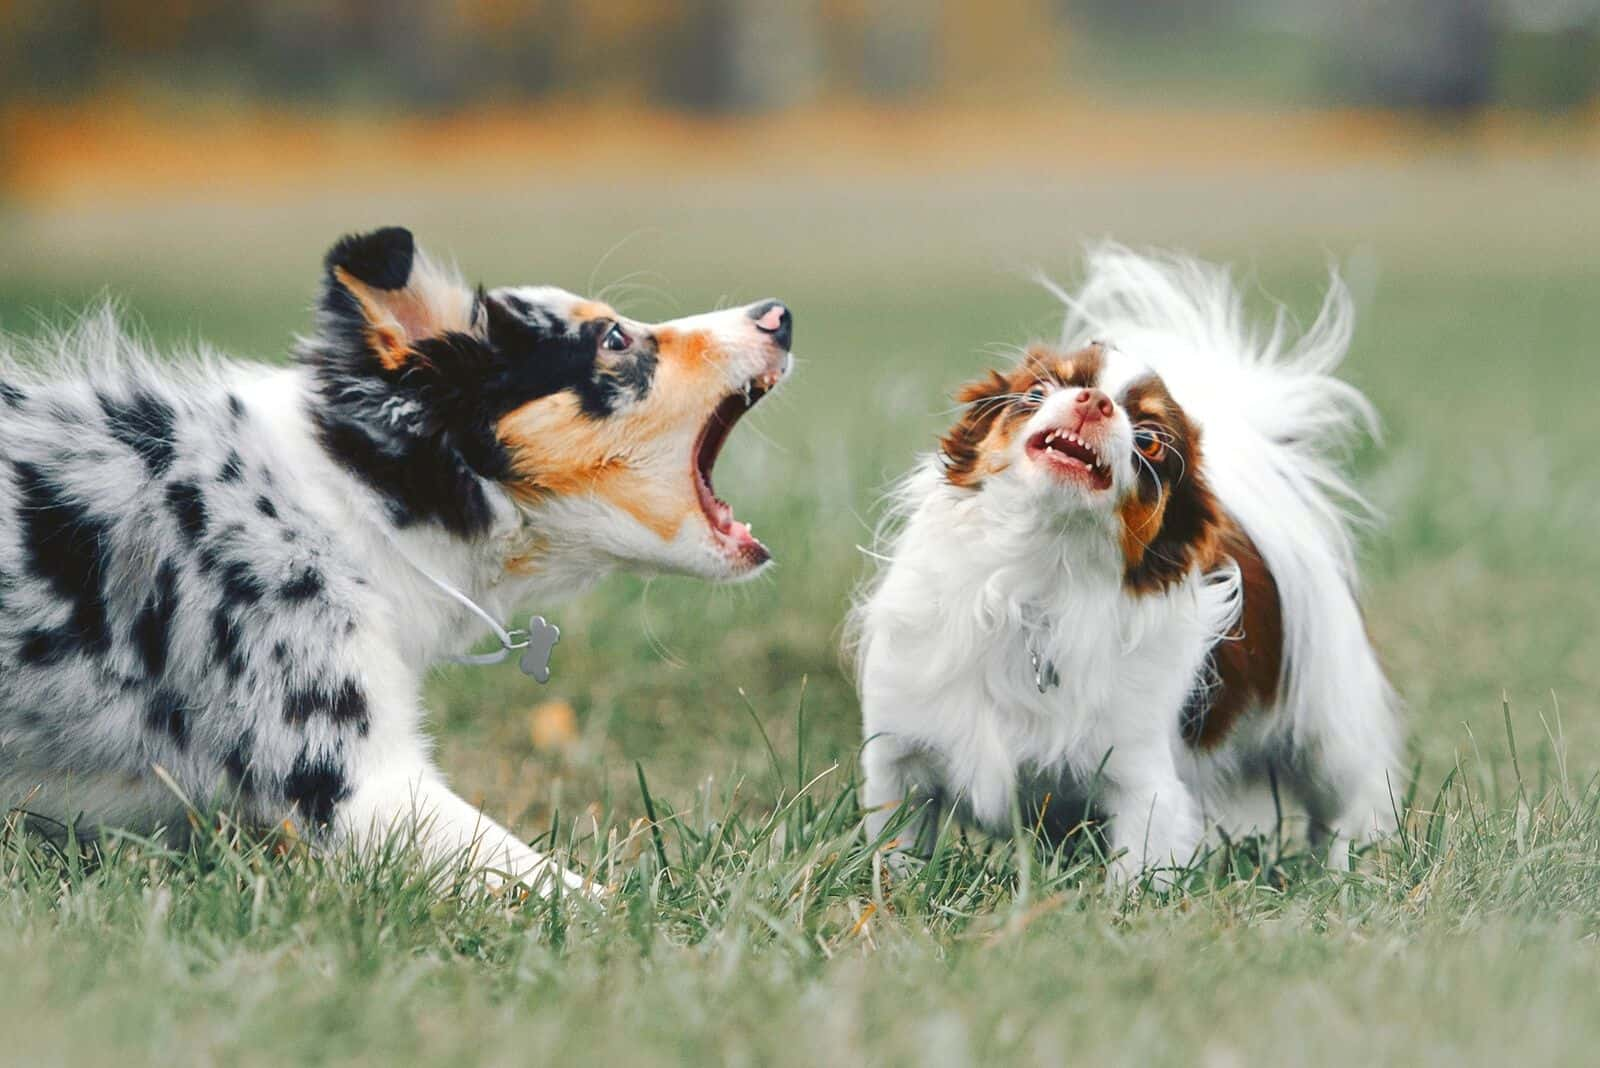 border collie puppy barking on another dog during playtime